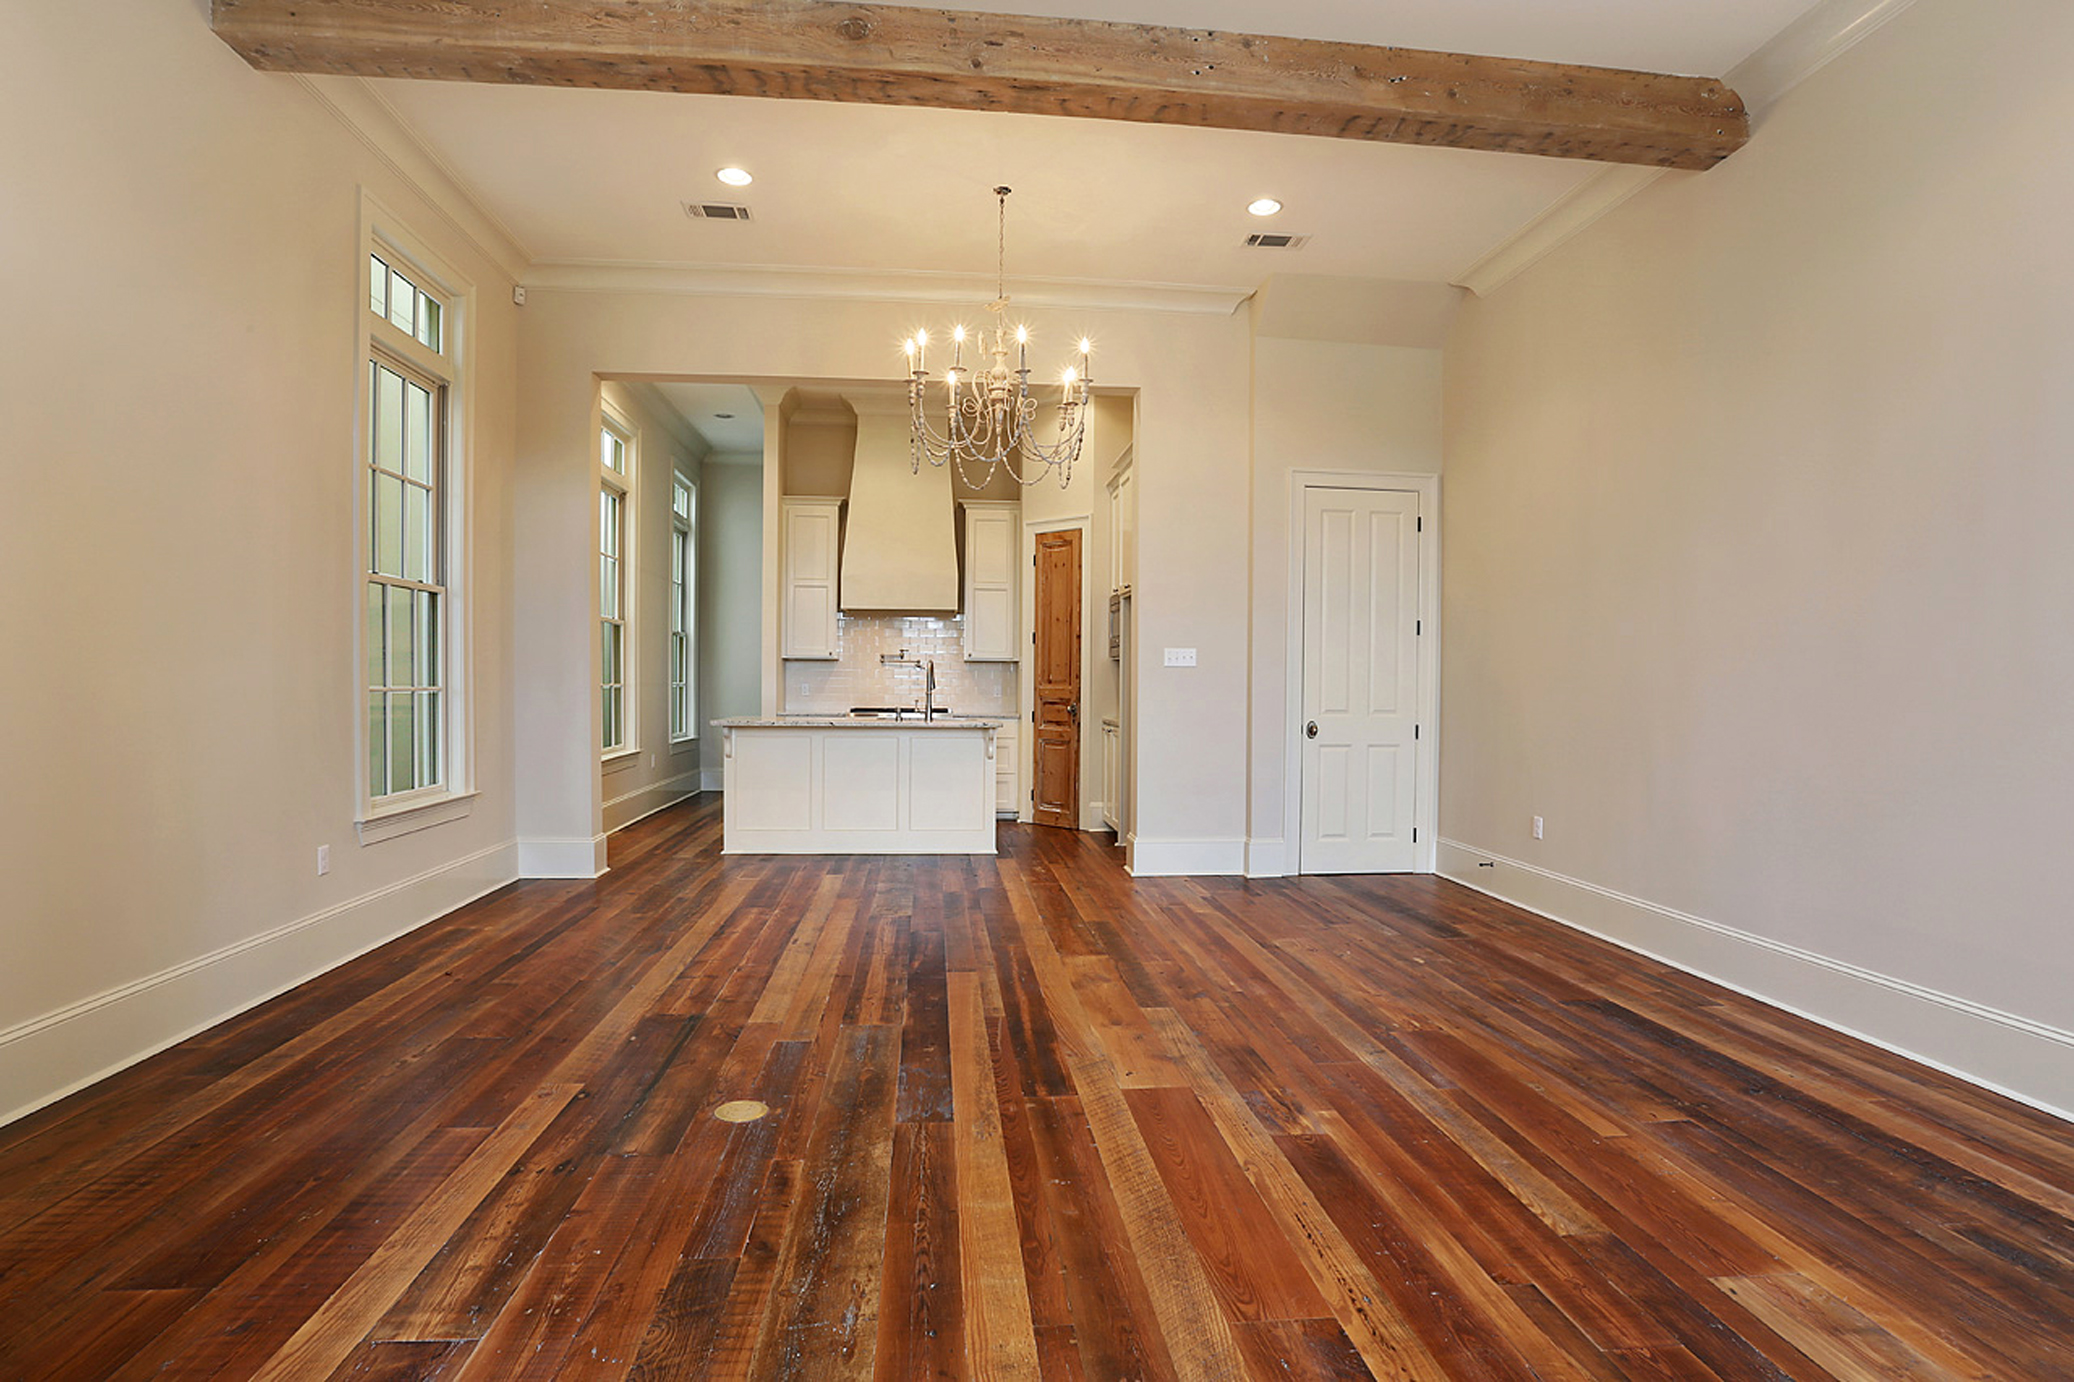 For this home in the Perkins Lane development, Holliday let features like old beams and heart-pine floors shine by keeping her palette toned down but textural.